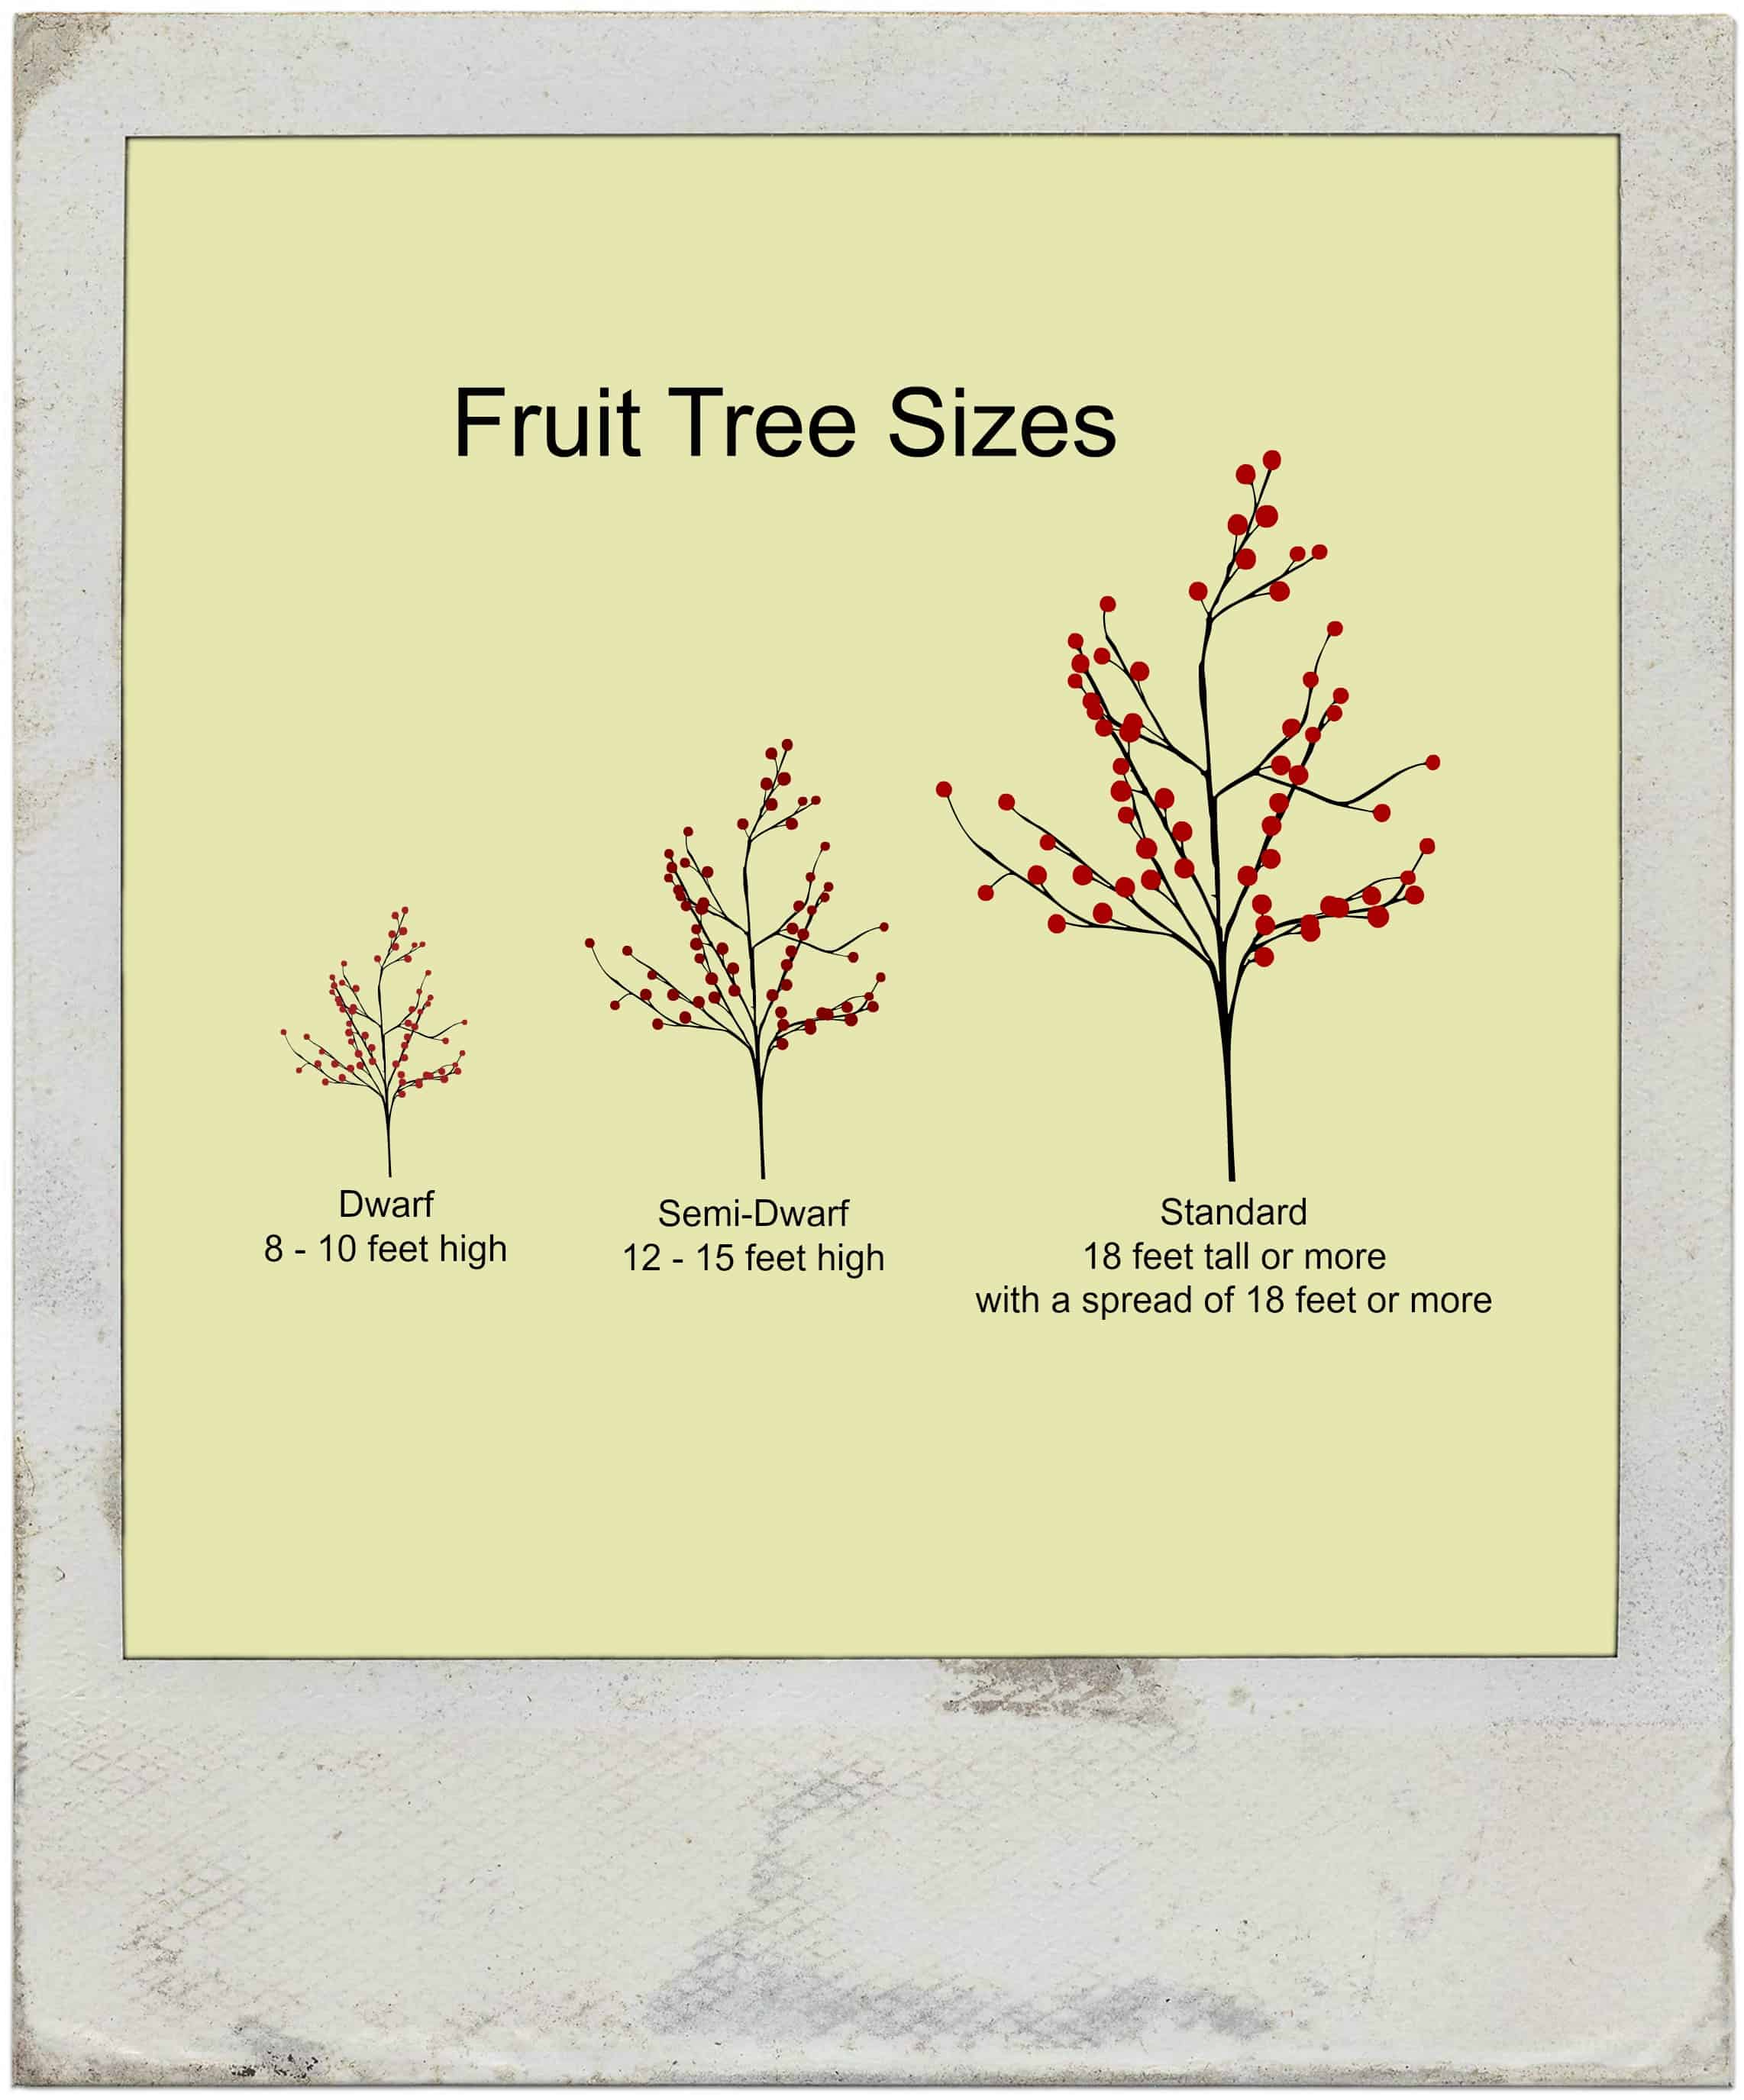 What does dwarf fruit tree mean home garden joy fruit tree sizes buycottarizona